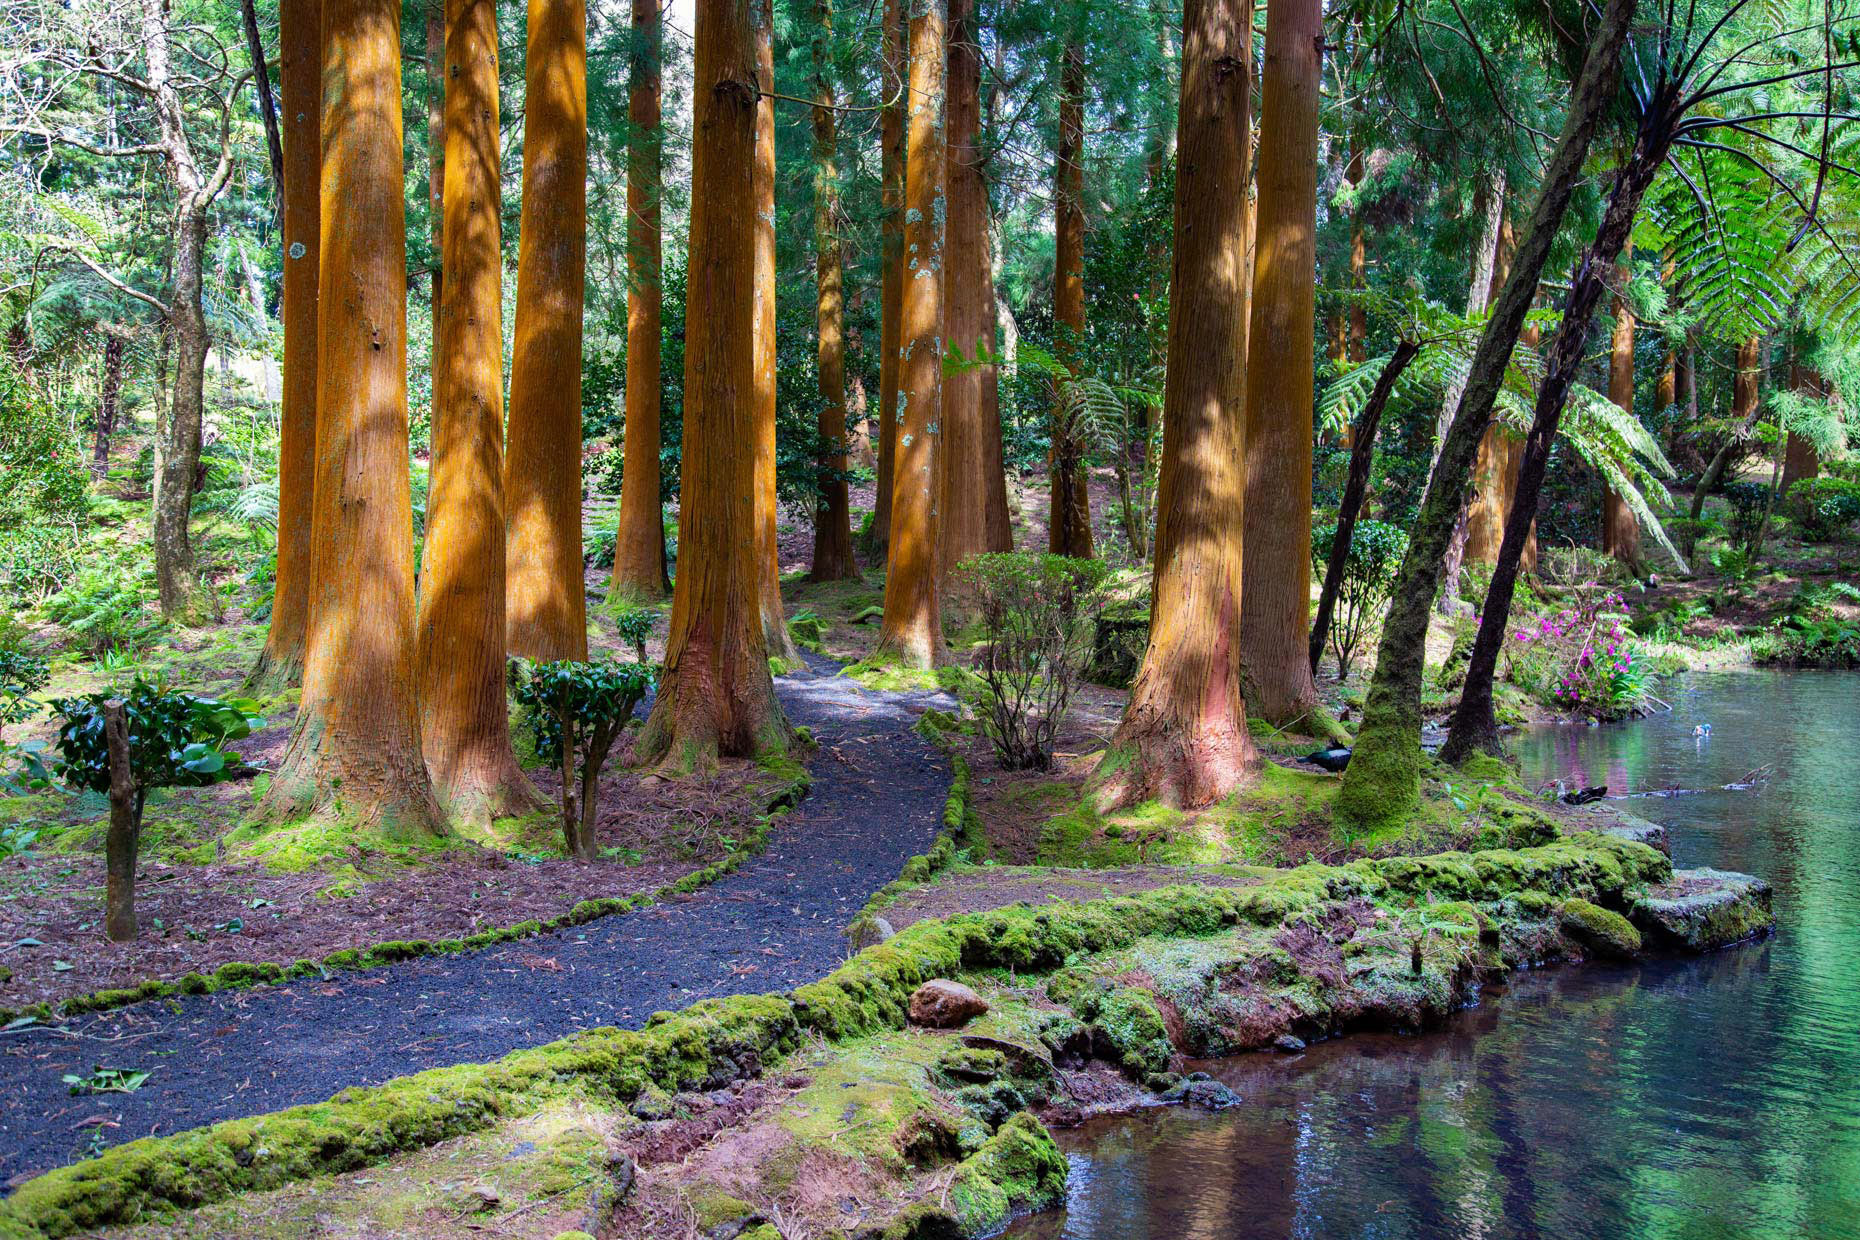 Sao-Jorge-Azores-Forest-Travel-Photography-Caryn-B-Davis